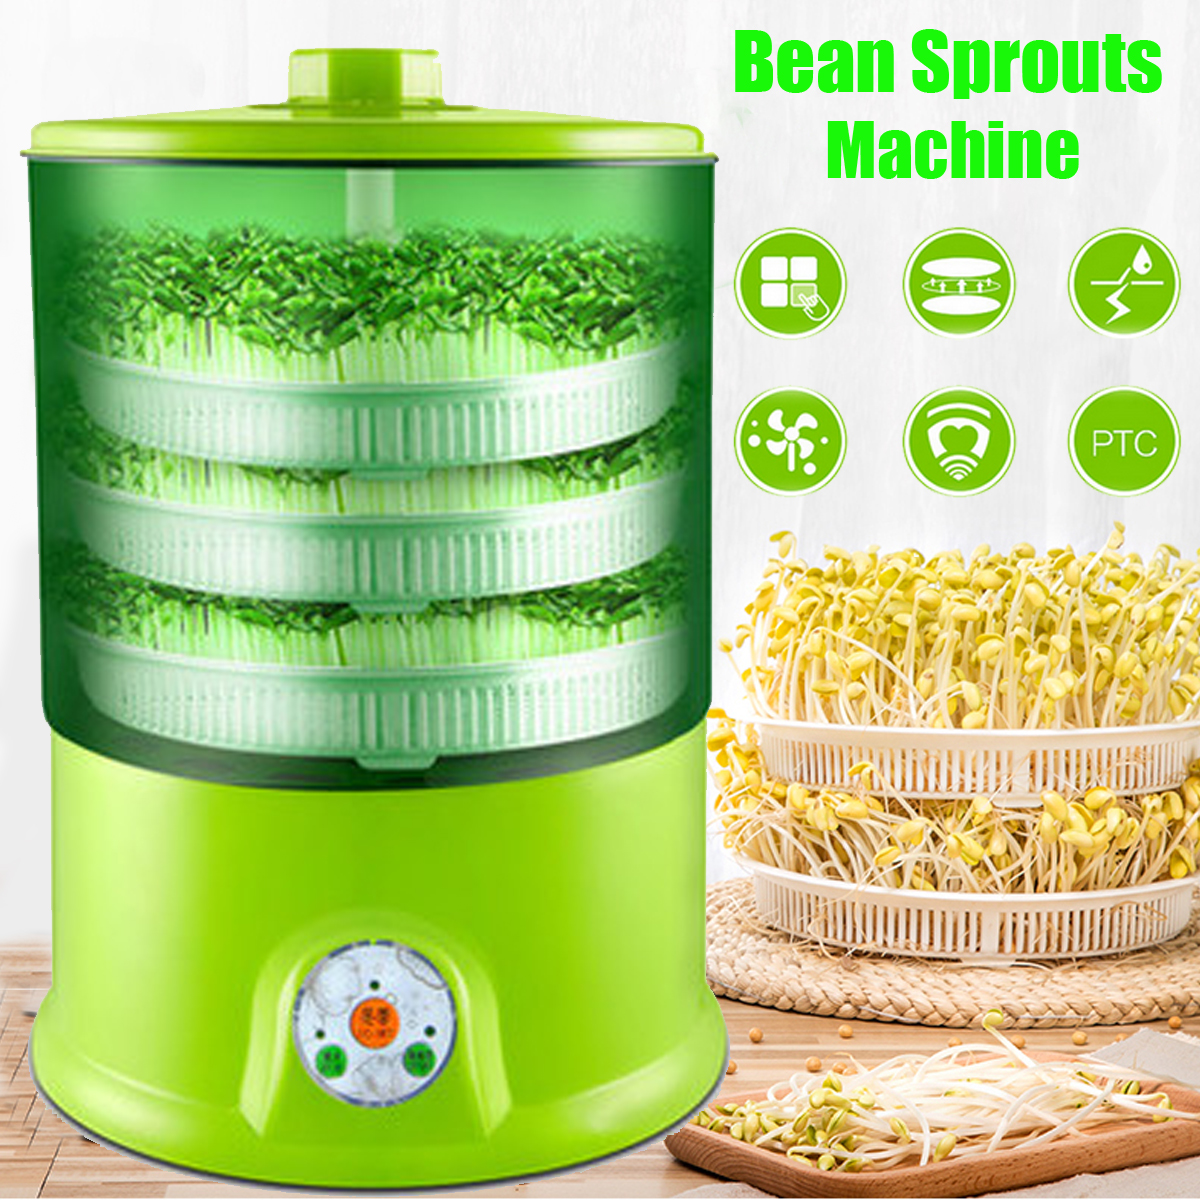 Warmtoo 1.5L 3 Layers Ntelligent Bean Sprouts Machine Multifunctional Automatic Bean Sprouts Homemade DIY Tools 220v 260x330mm